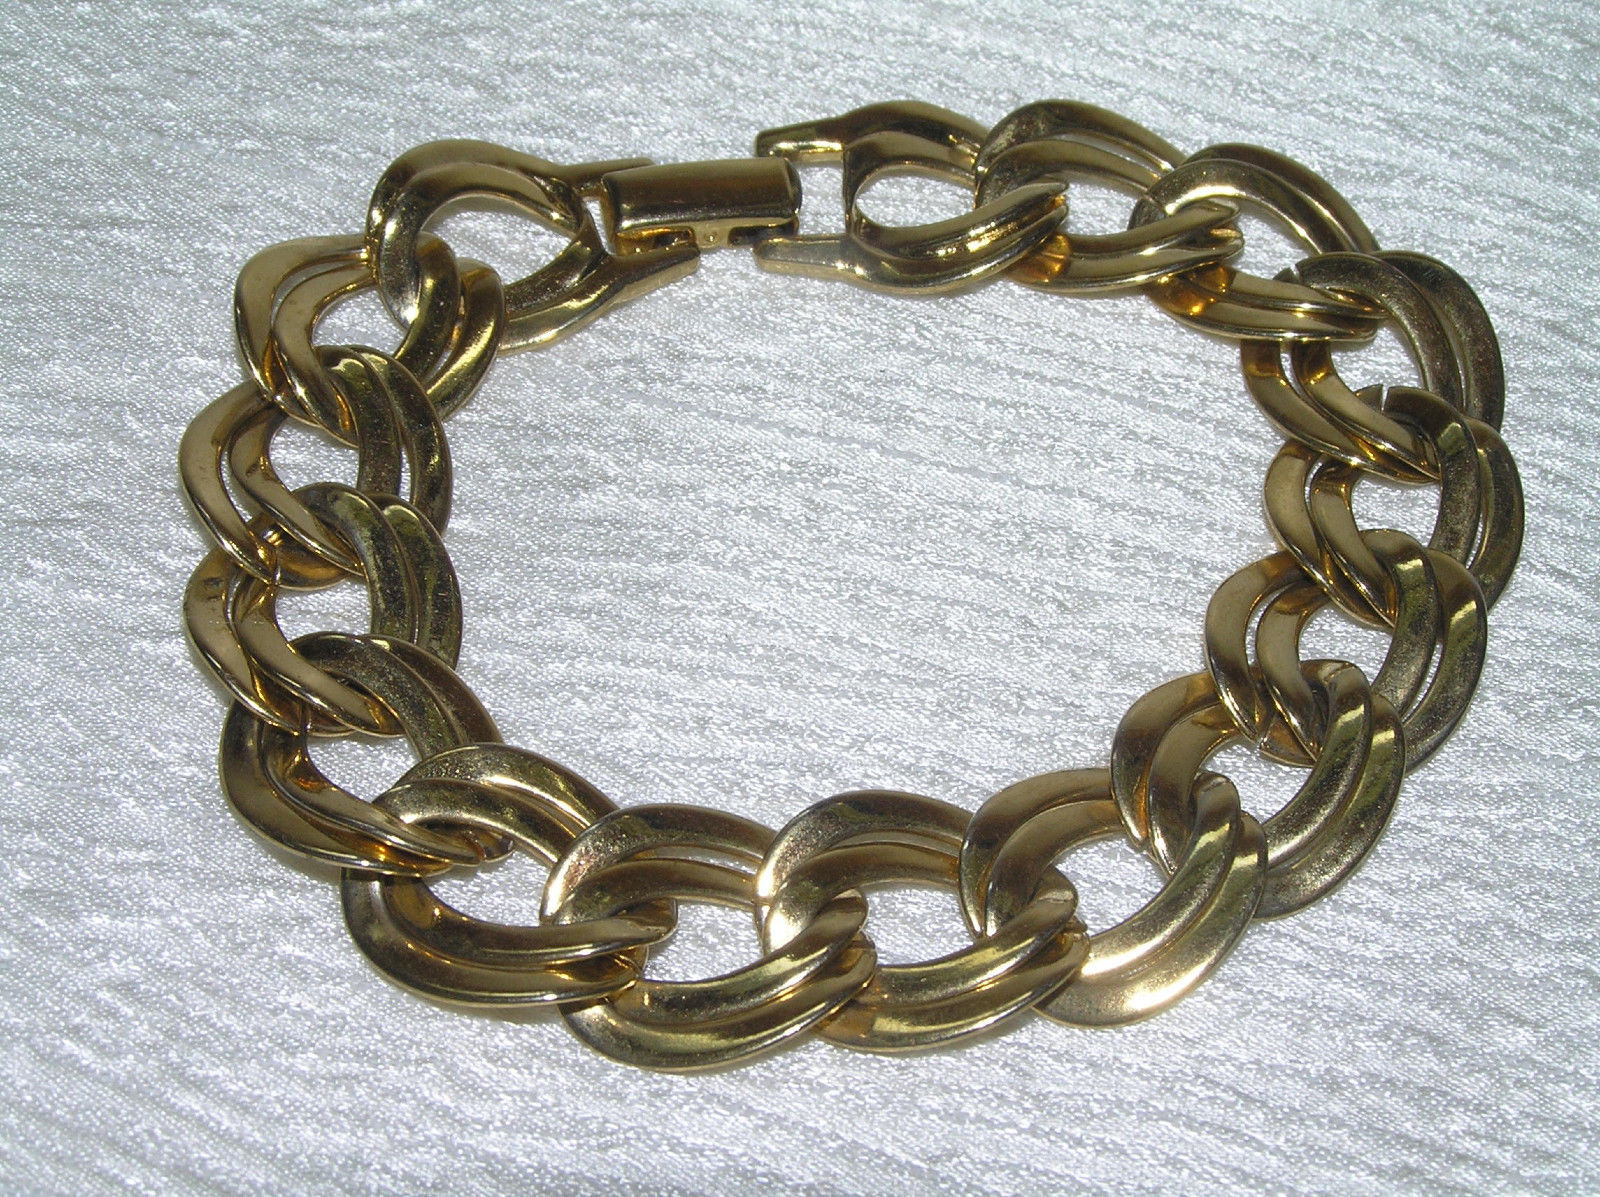 Vintage Flattened Double Open Oval Goldtone Link Bracelet – 7.5 x 5/8th's inches